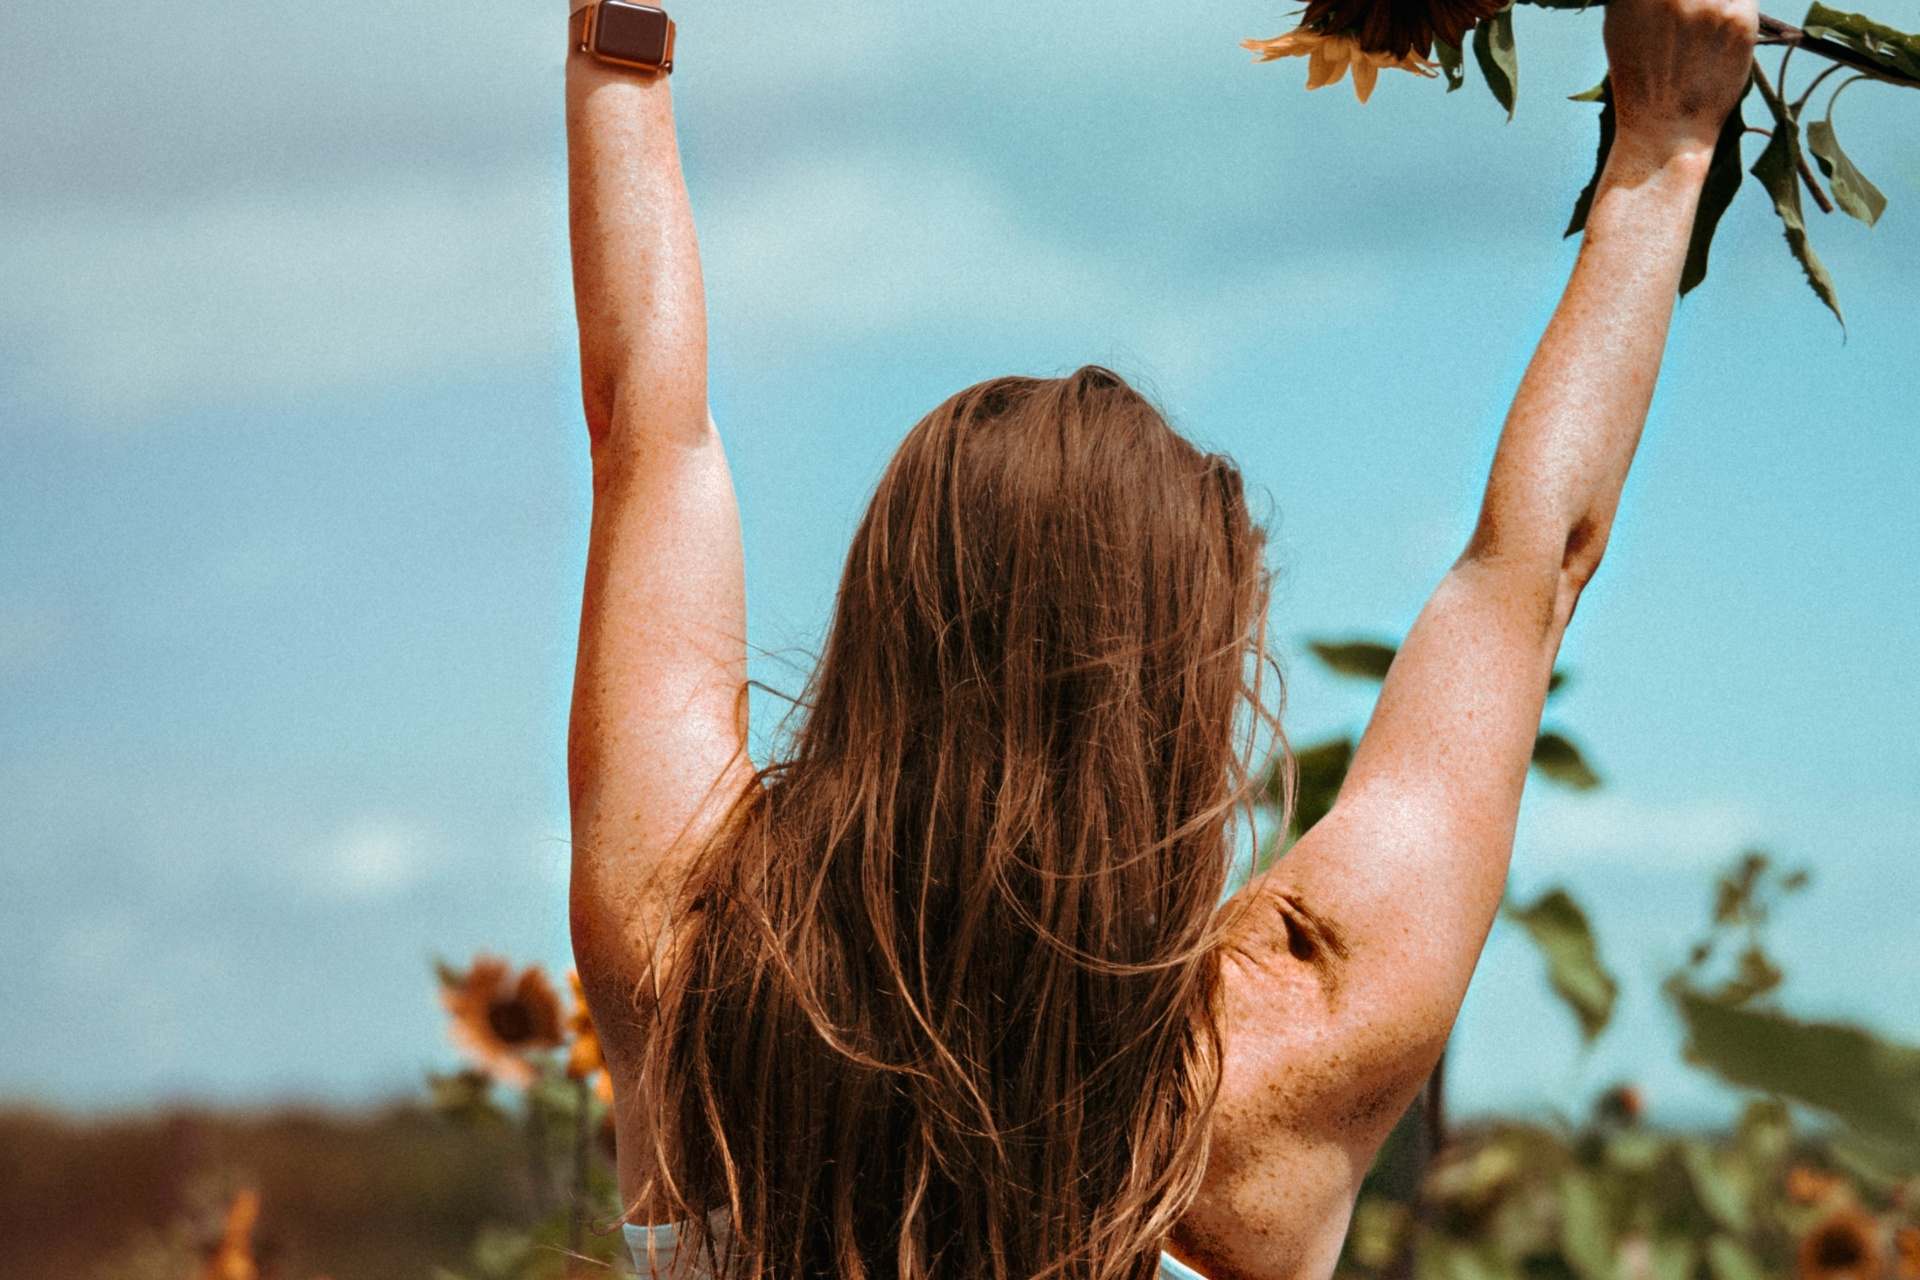 Why Each Zodiac Sign Should Stay Positive